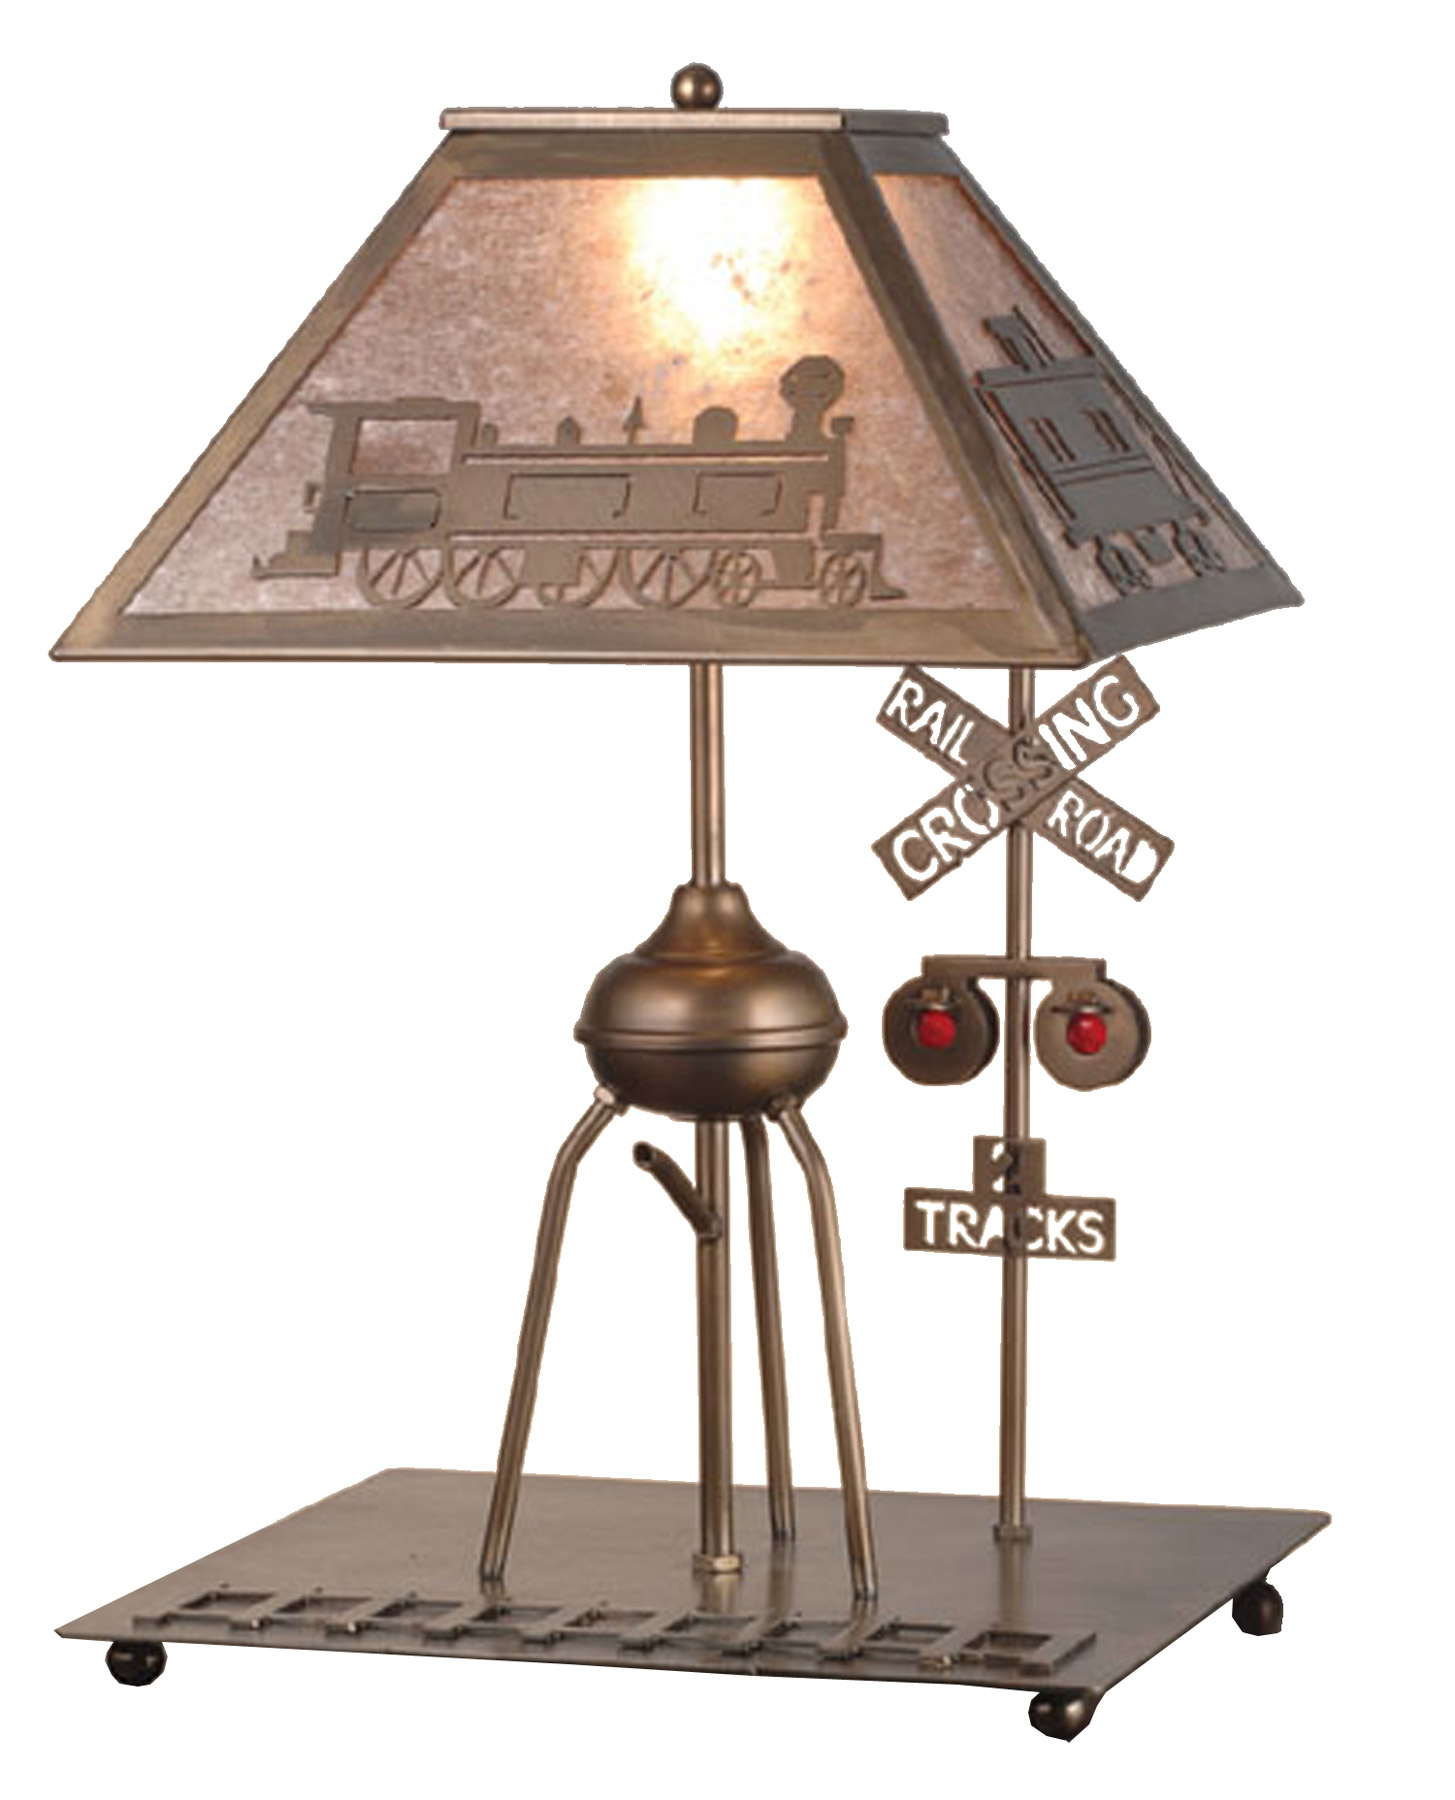 Meyda 51704 Railroad Train Table Lamp